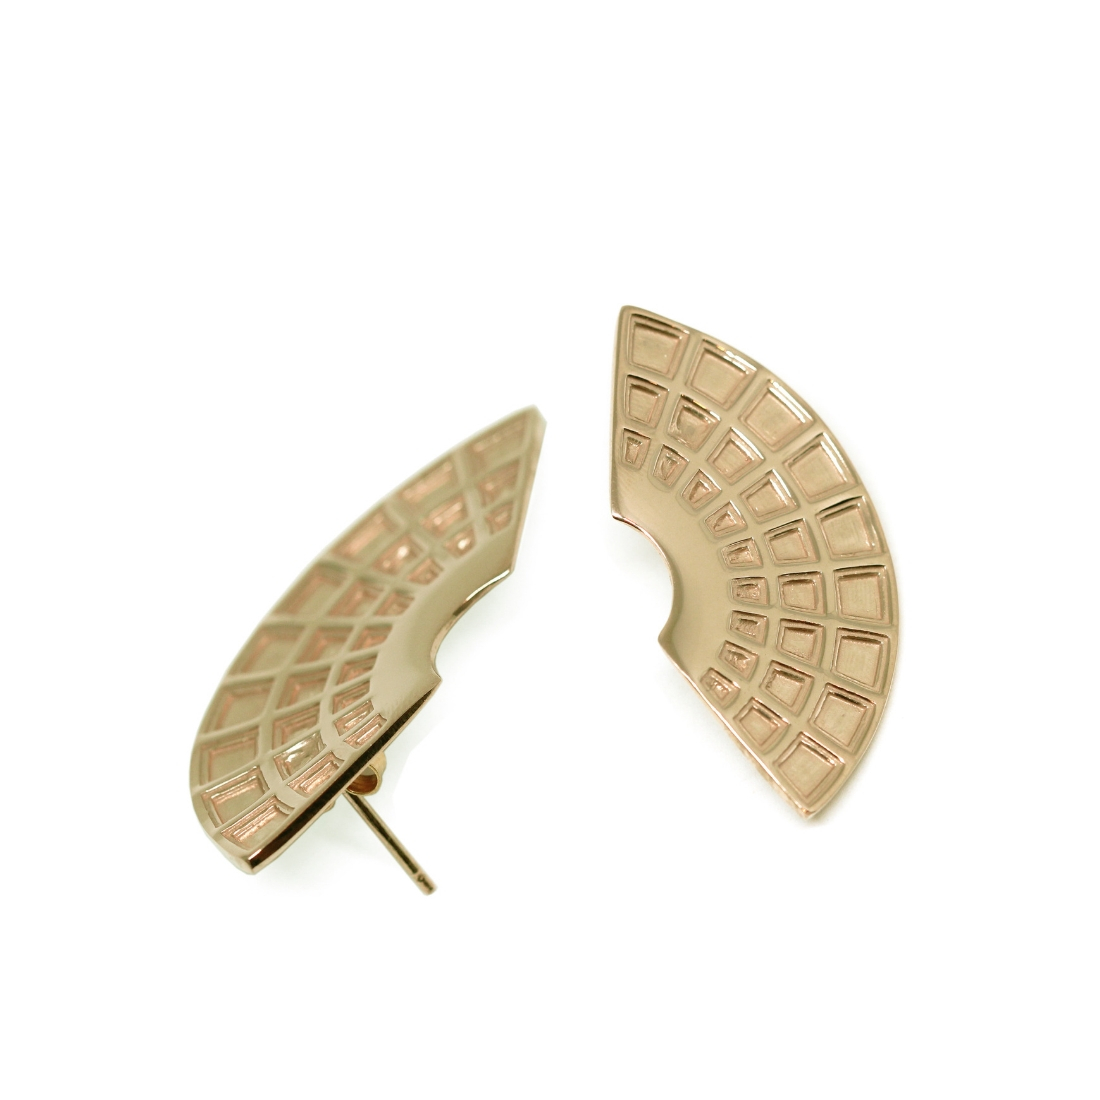 Pantheon Earrings Gold-Plated Silver